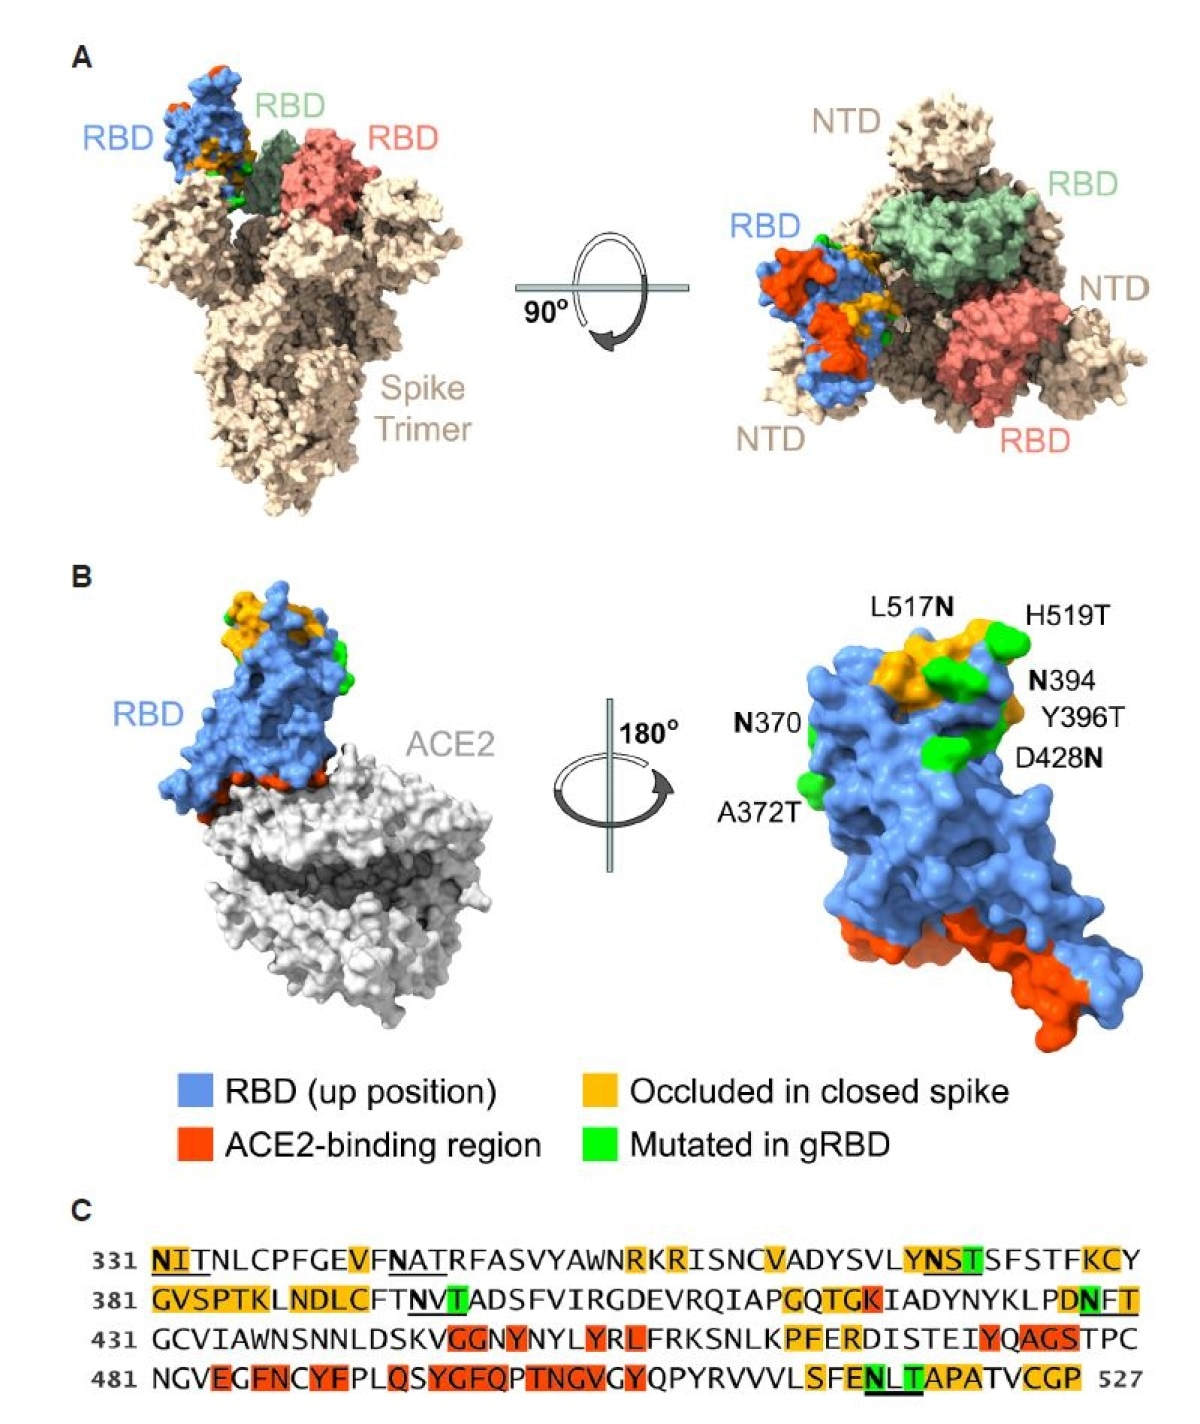 Engineered SARS-CoV-2 RBD glycans enhance expression of multivalent RBD fusion proteins. Views of the RBD (A) in the context of the SARS-CoV-2 S protein in the open one-up conformation, with the ACE2-binding region (red) facing upward and (B) bound to the ACE2 receptor, with the RBD ACE2-binding region facing downwards. Blue indicates surface residues that are neither occluded in the closed conformation (indicated by yellow) nor part of the ACE2 interface (red). Green indicates residues whose mutation creates a novel N-glycoslylation motif. (C) The sequence of the engineered RBD bearing four novel glycosylation motifs (gRBD) is shown. Numbering indicates S-protein residue. Glycosylation motifs (2 native and 4 engineered) are underlined. Coloring is as described in (B).